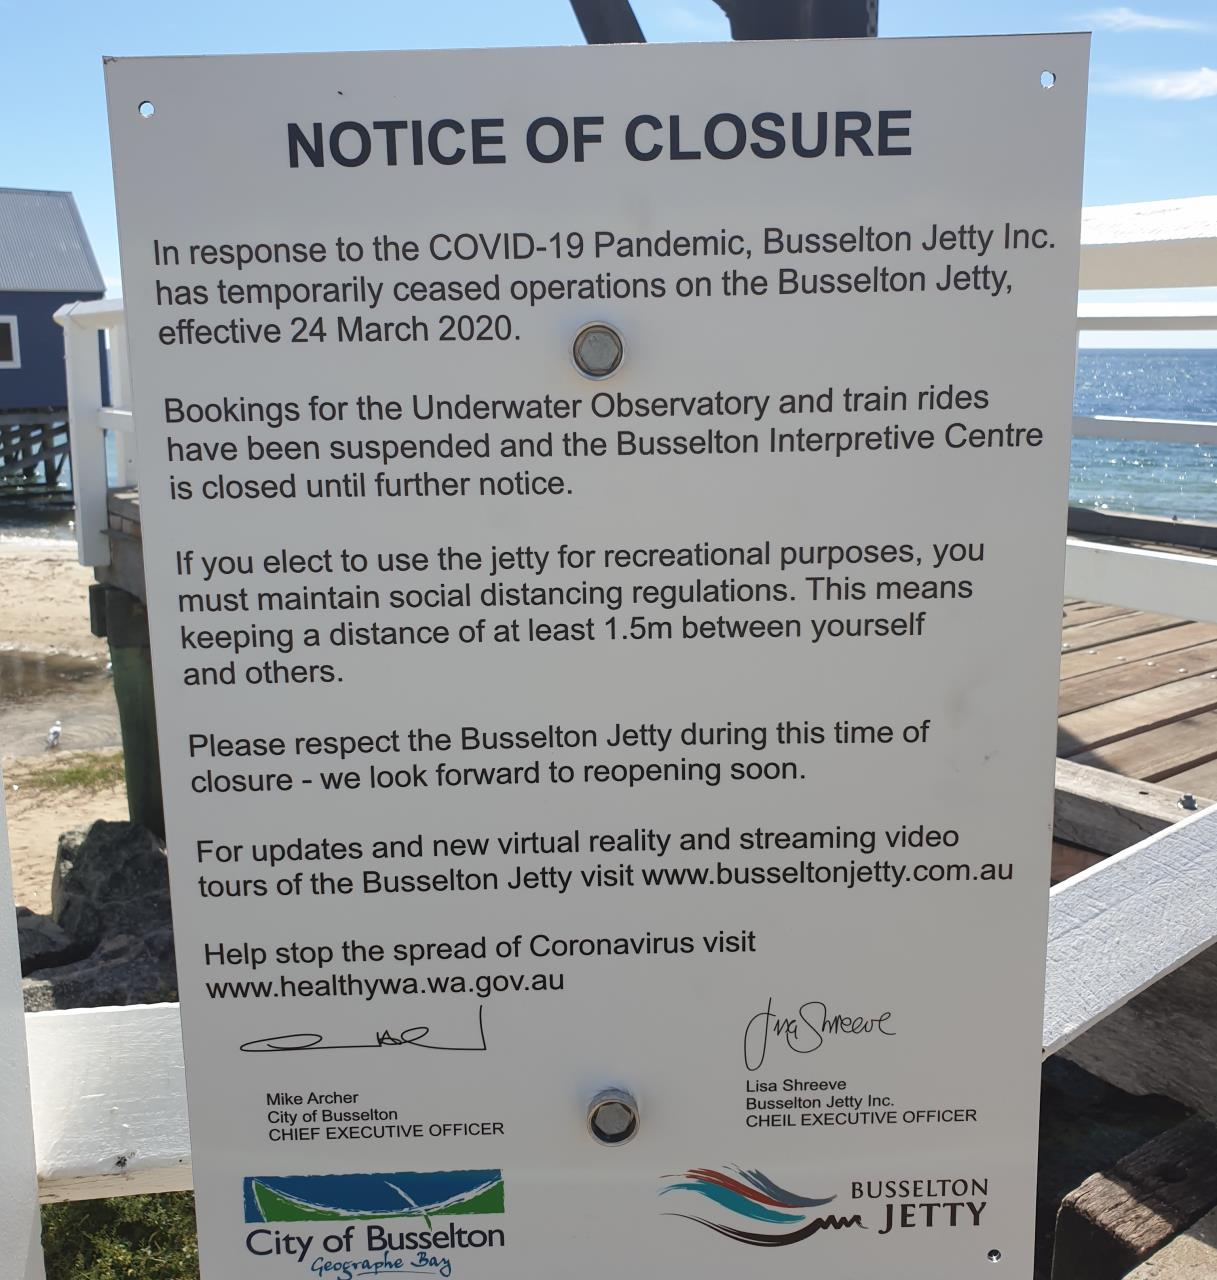 Busselton Jetty Inc. Closes Services along Iconic Jetty